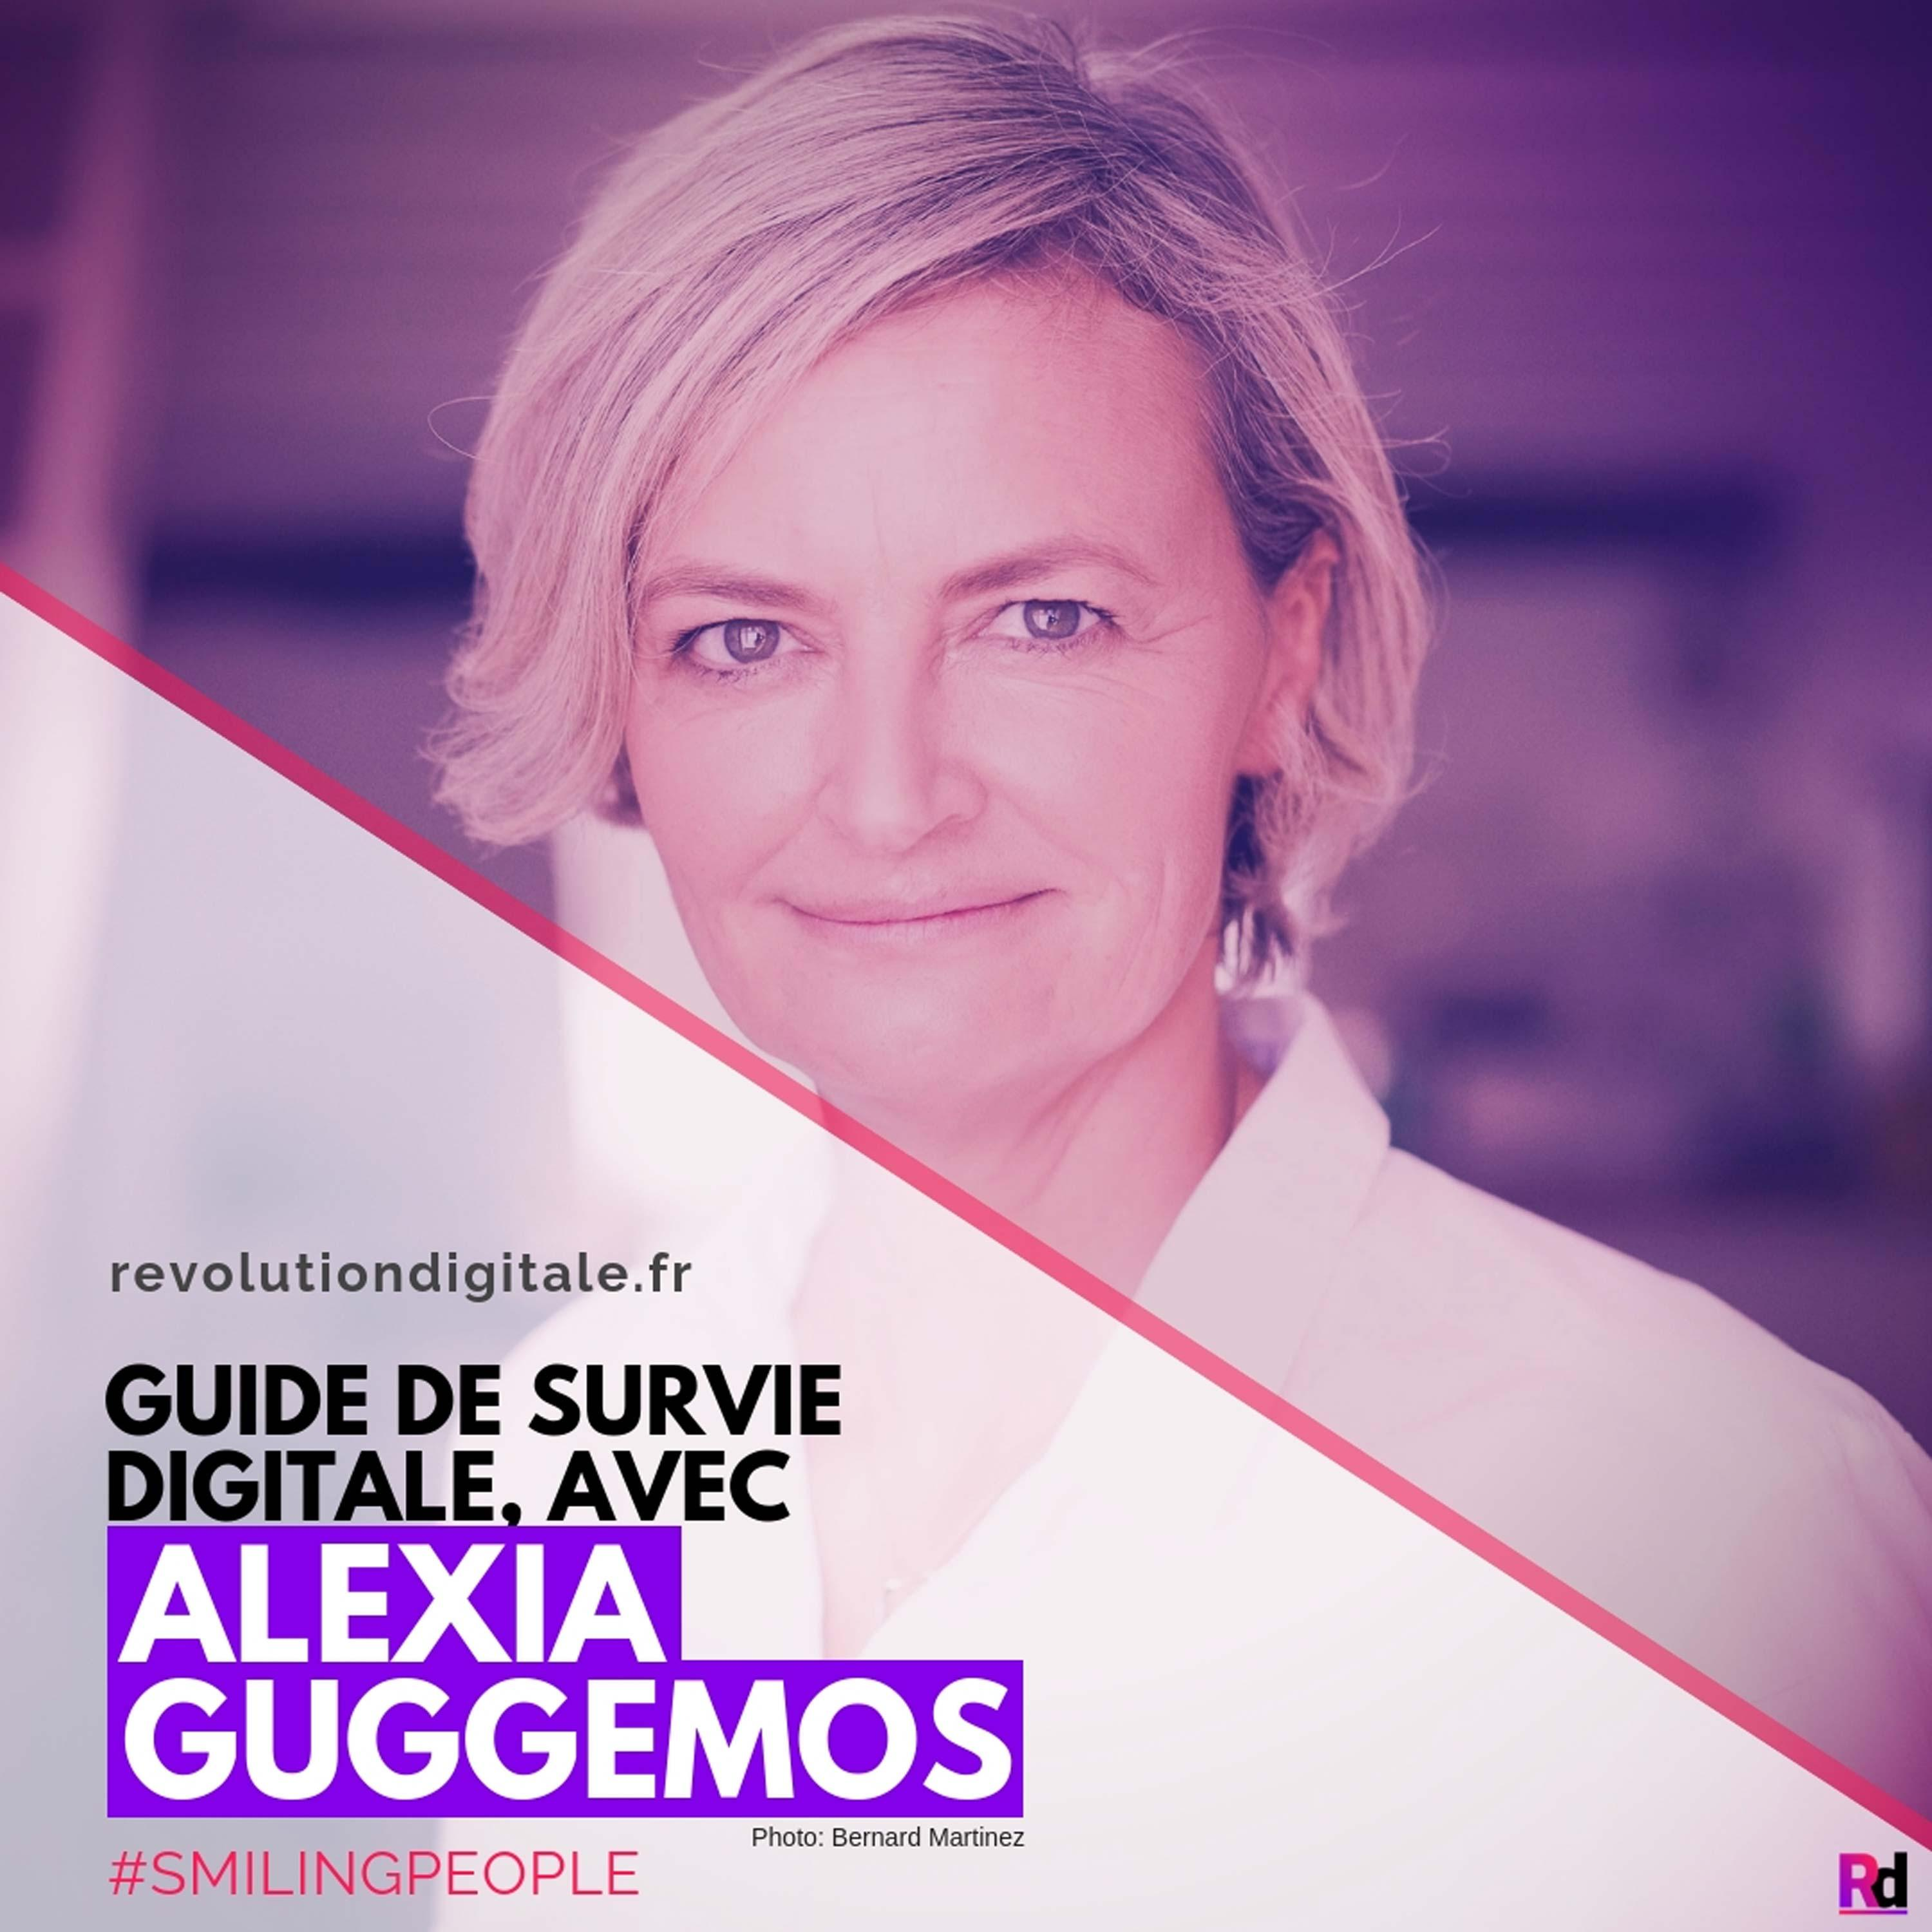 Guide de survie digitale, avec Alexia Guggémos (L'Observatoire Social Media - Smiling People)